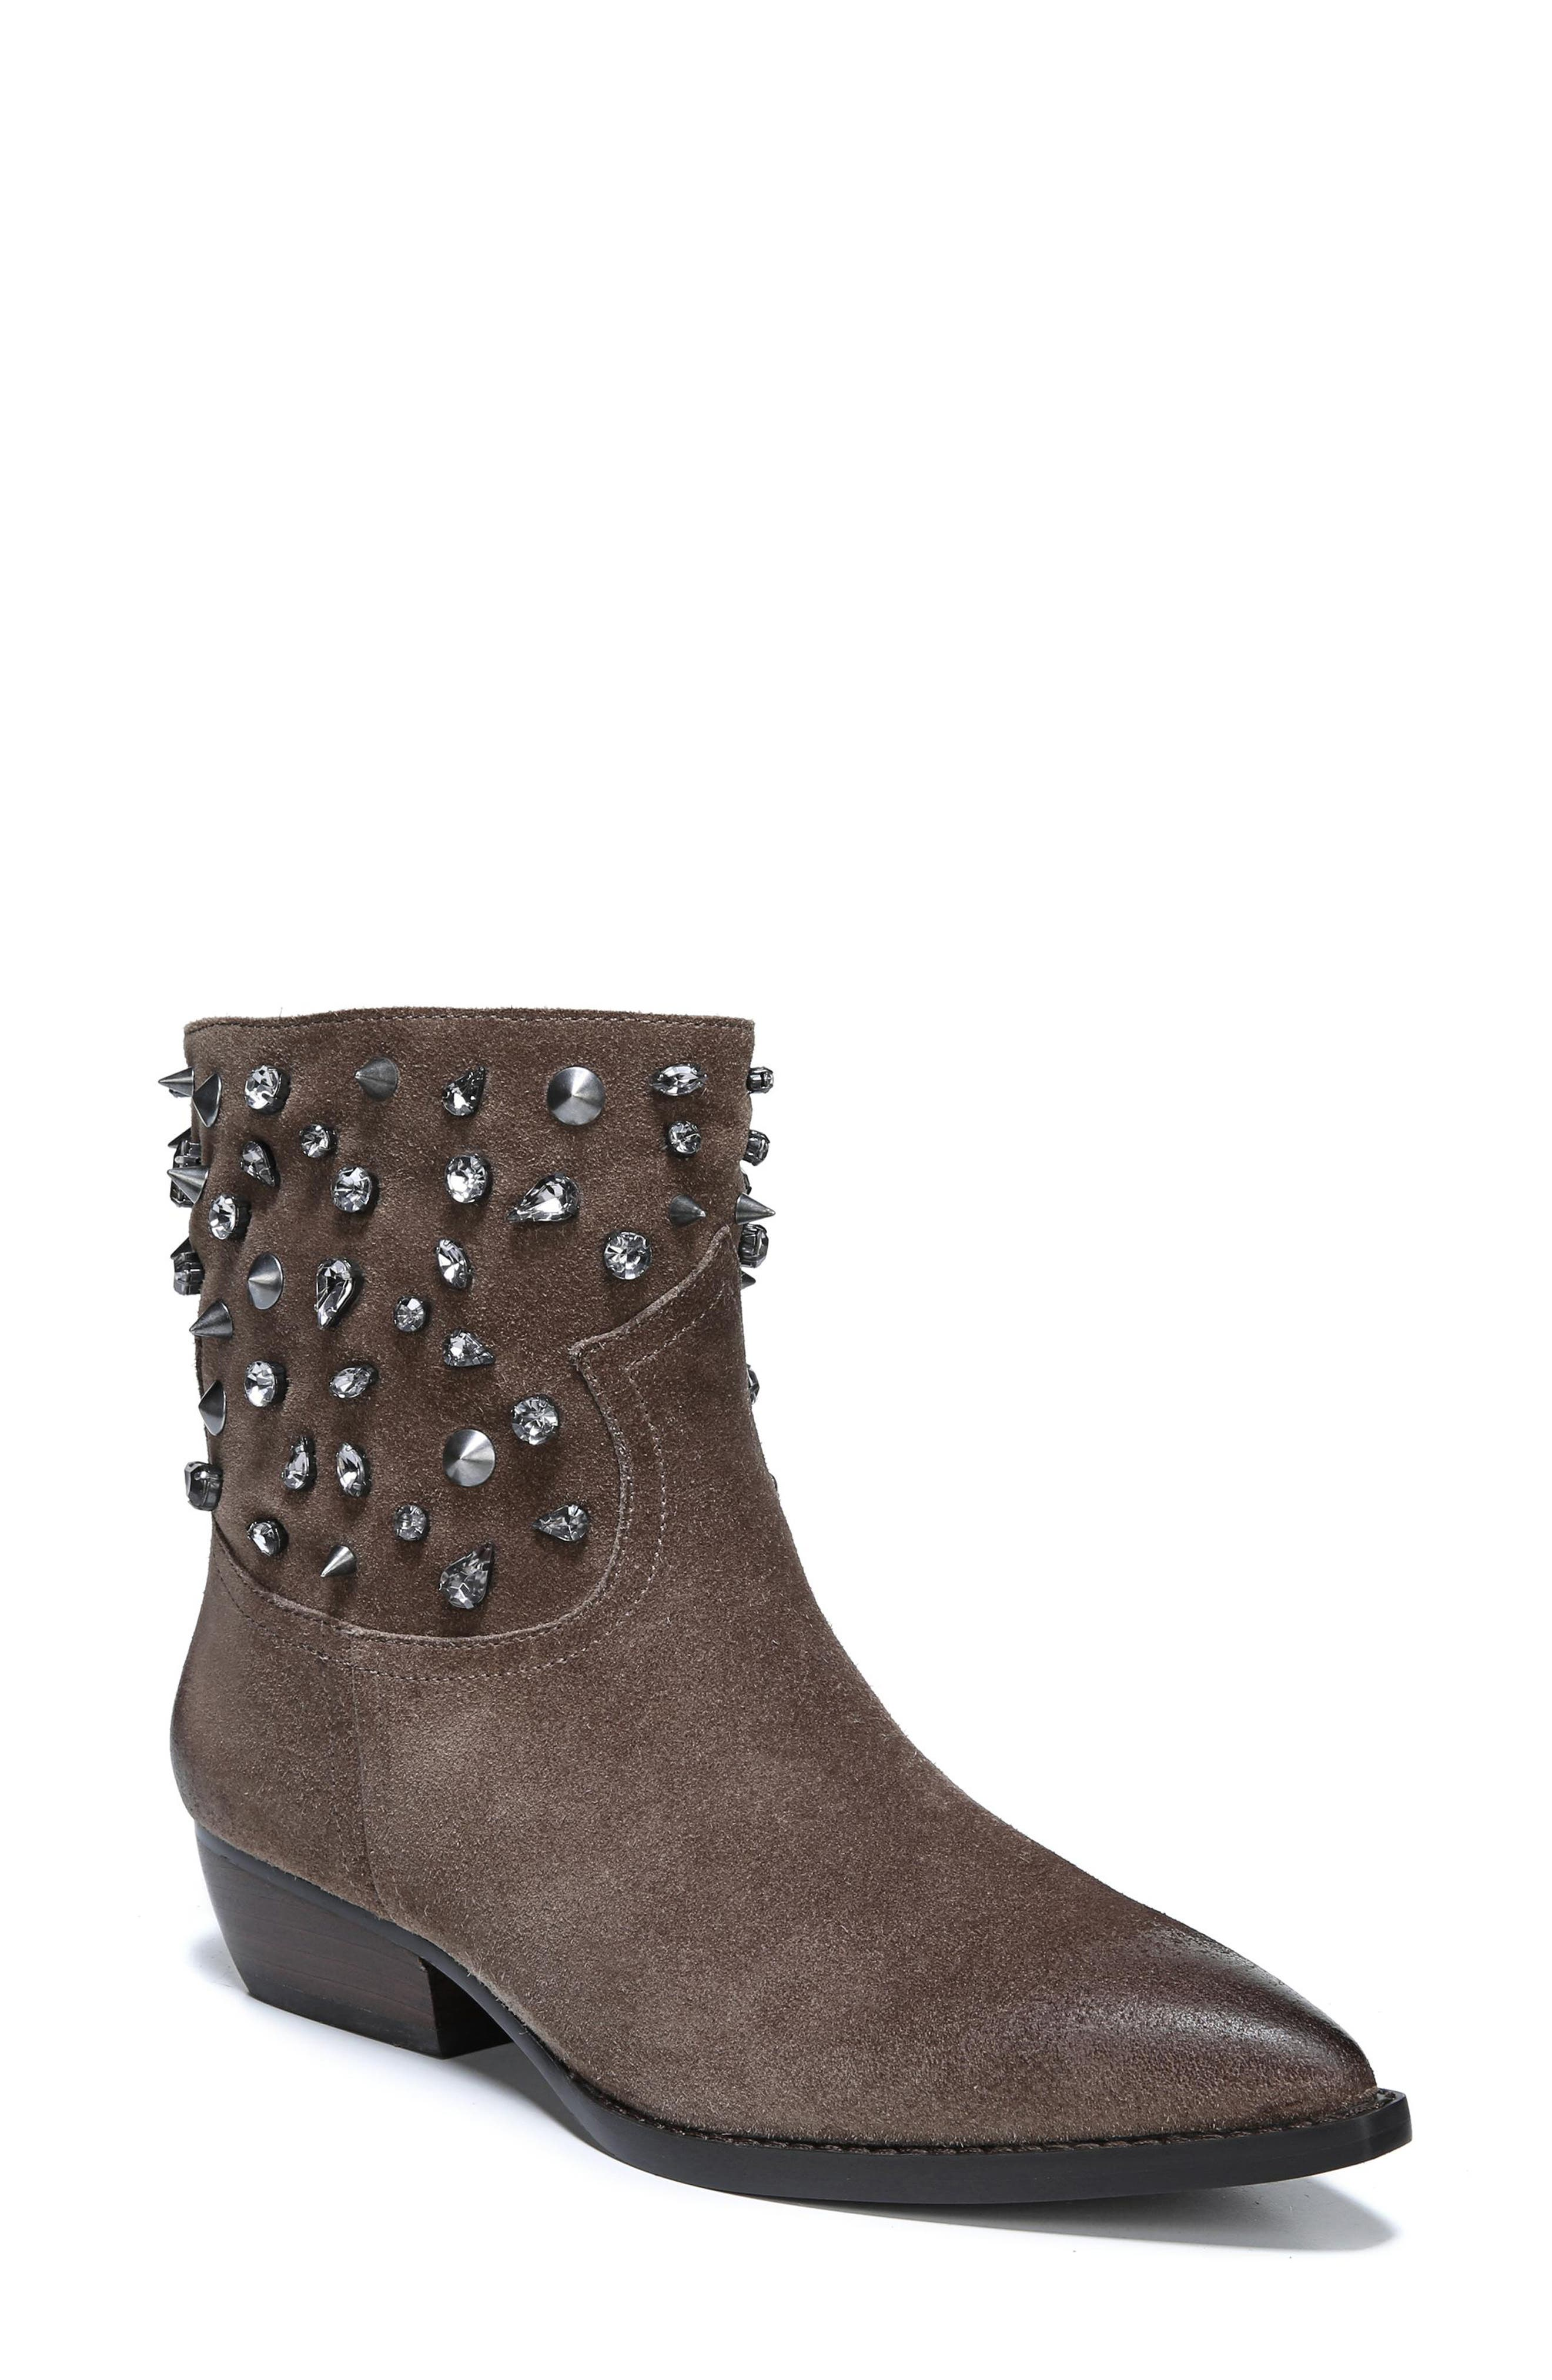 Sam Edelman Avril Embellished Bootie, Brown